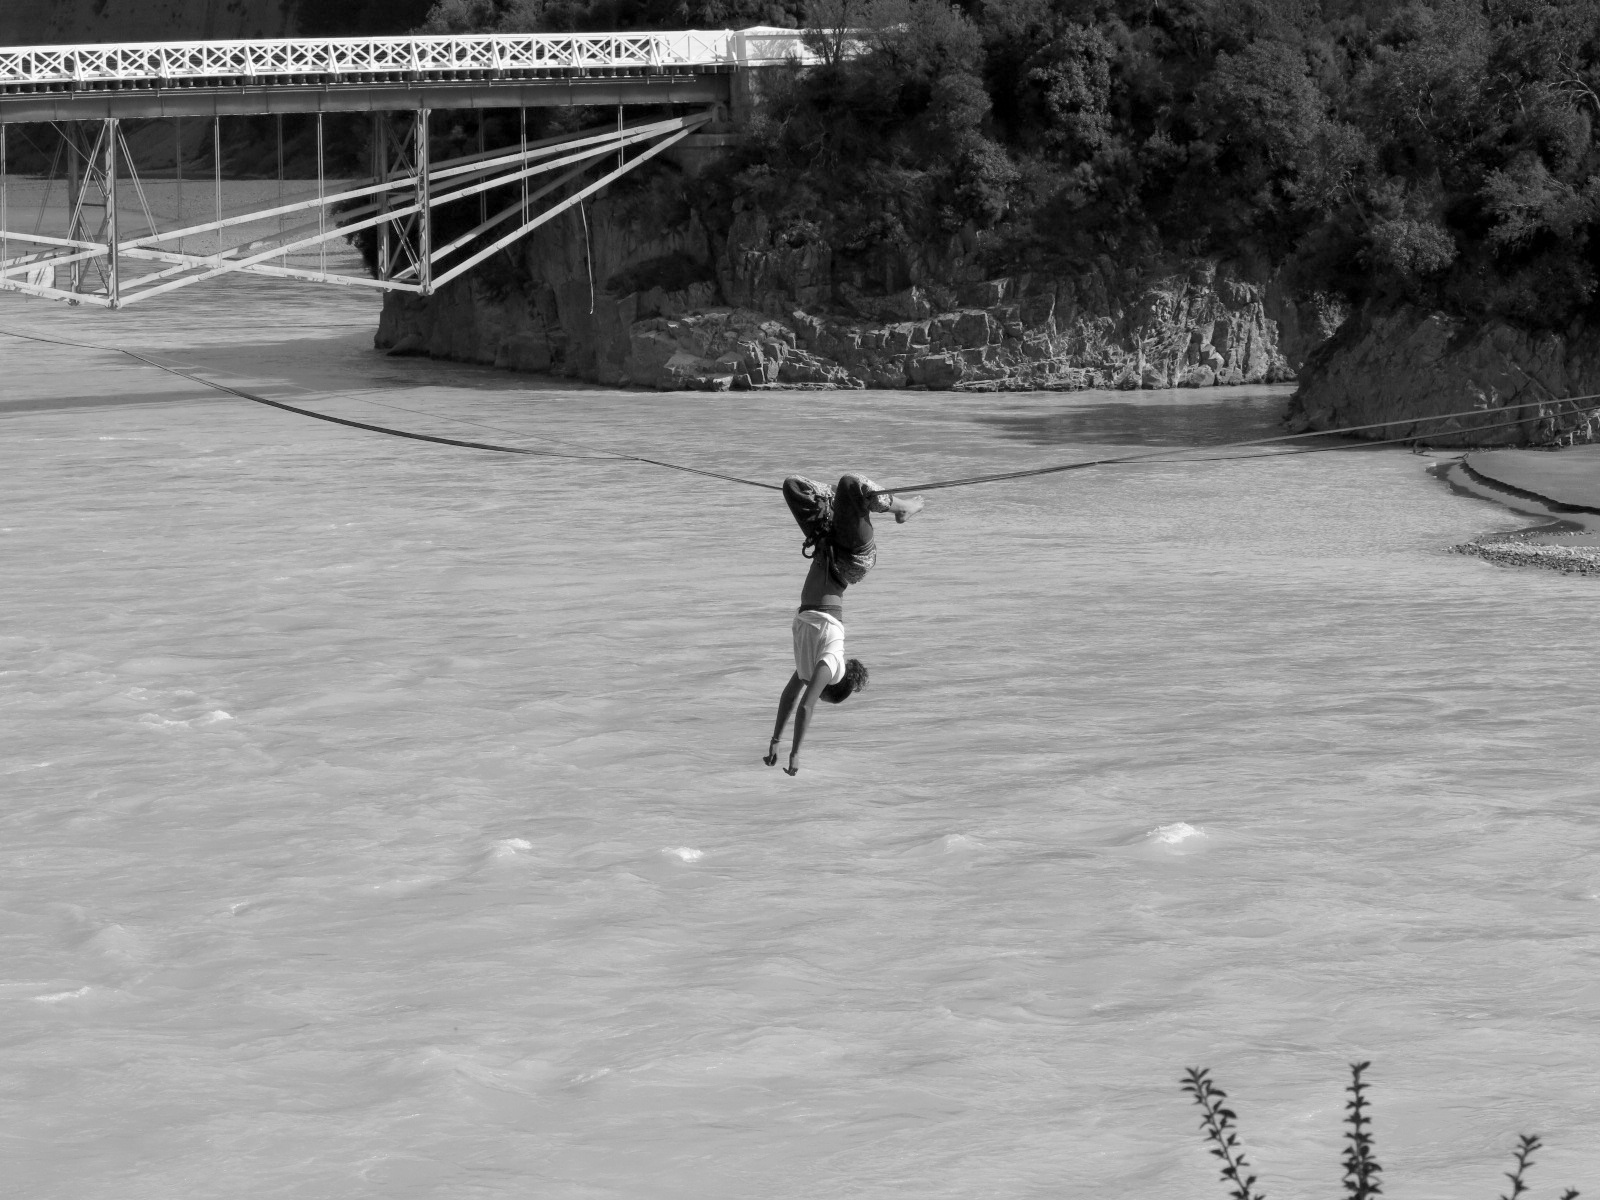 Just hanging out on the Rakaia River.